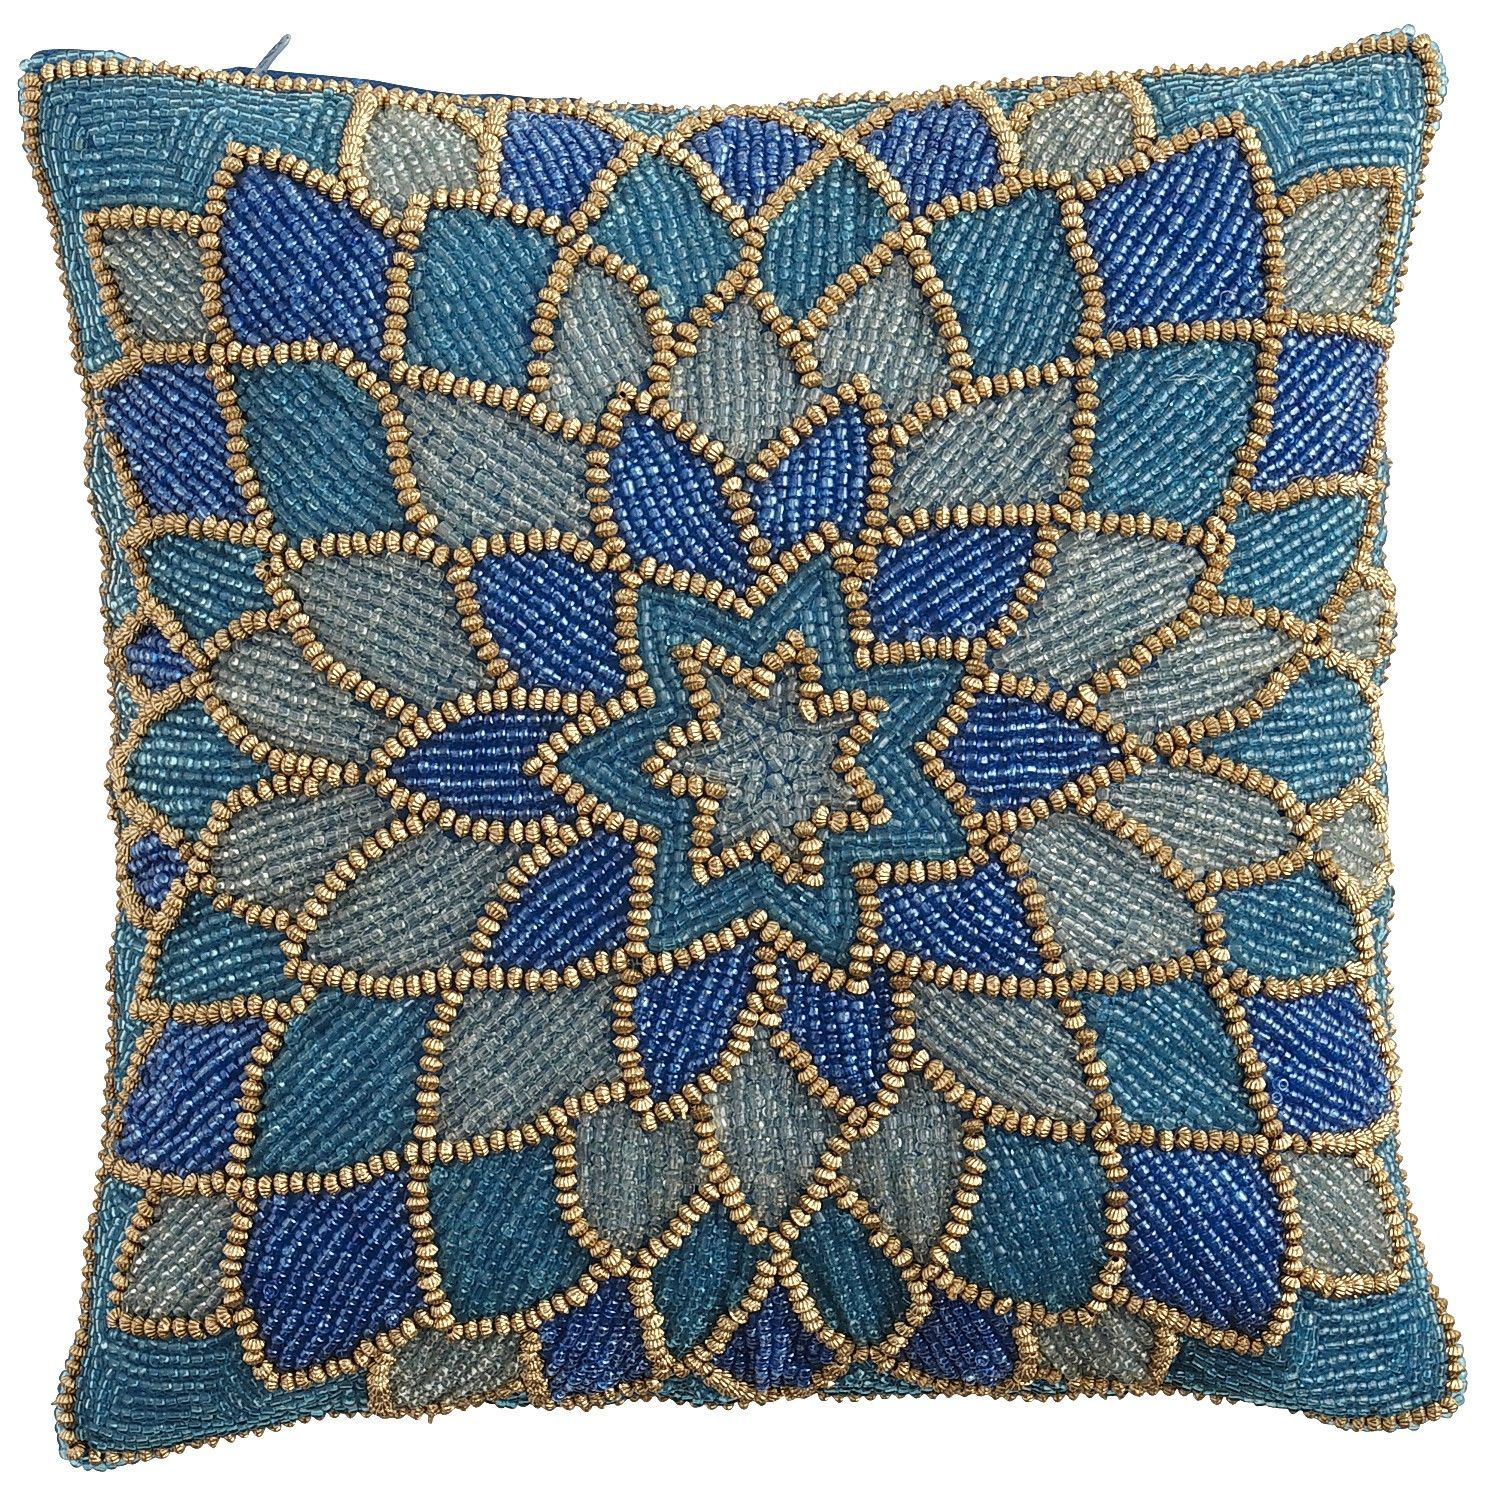 Teal Beaded Dahlia Pillow Pier 1 Imports Embellished Pillows